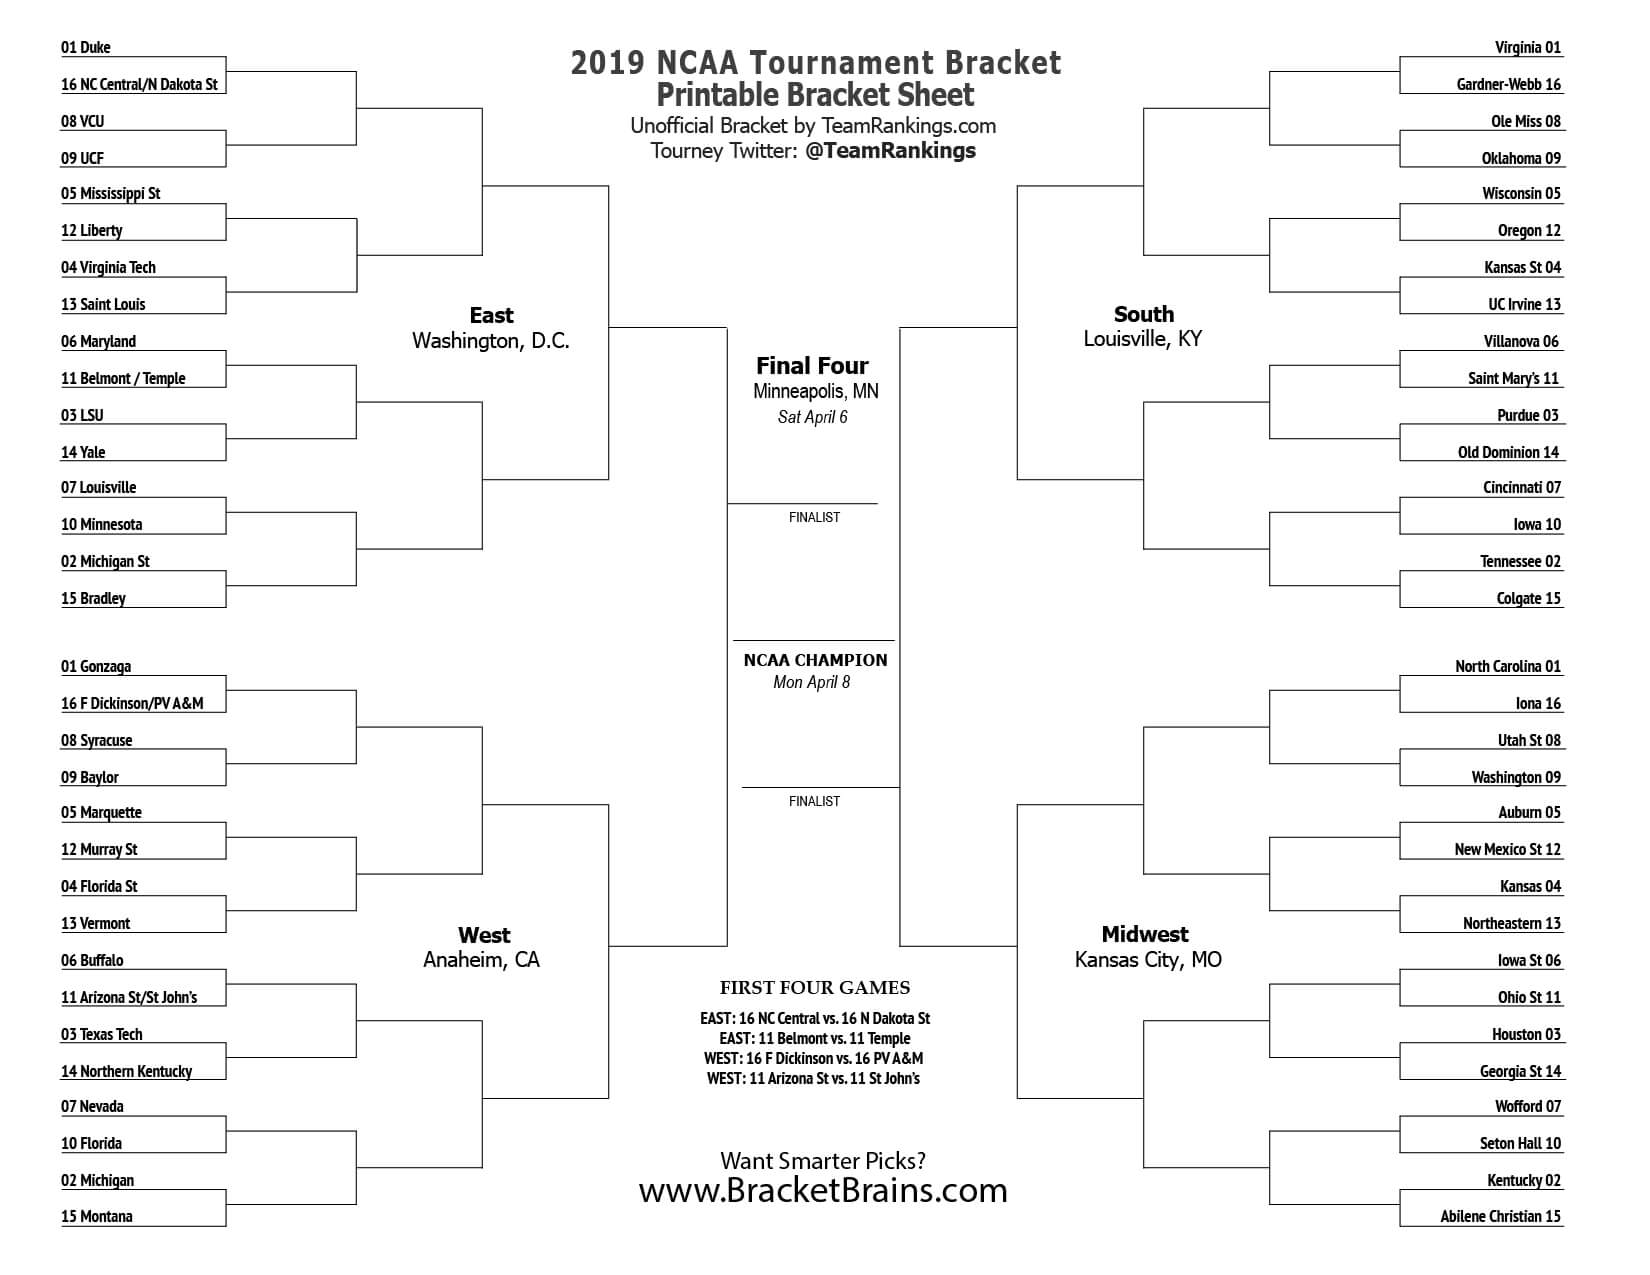 photo relating to Printable March Madness Bracket titled NCAA Printable Bracket 2019 -- Cost-free March Insanity Brackets